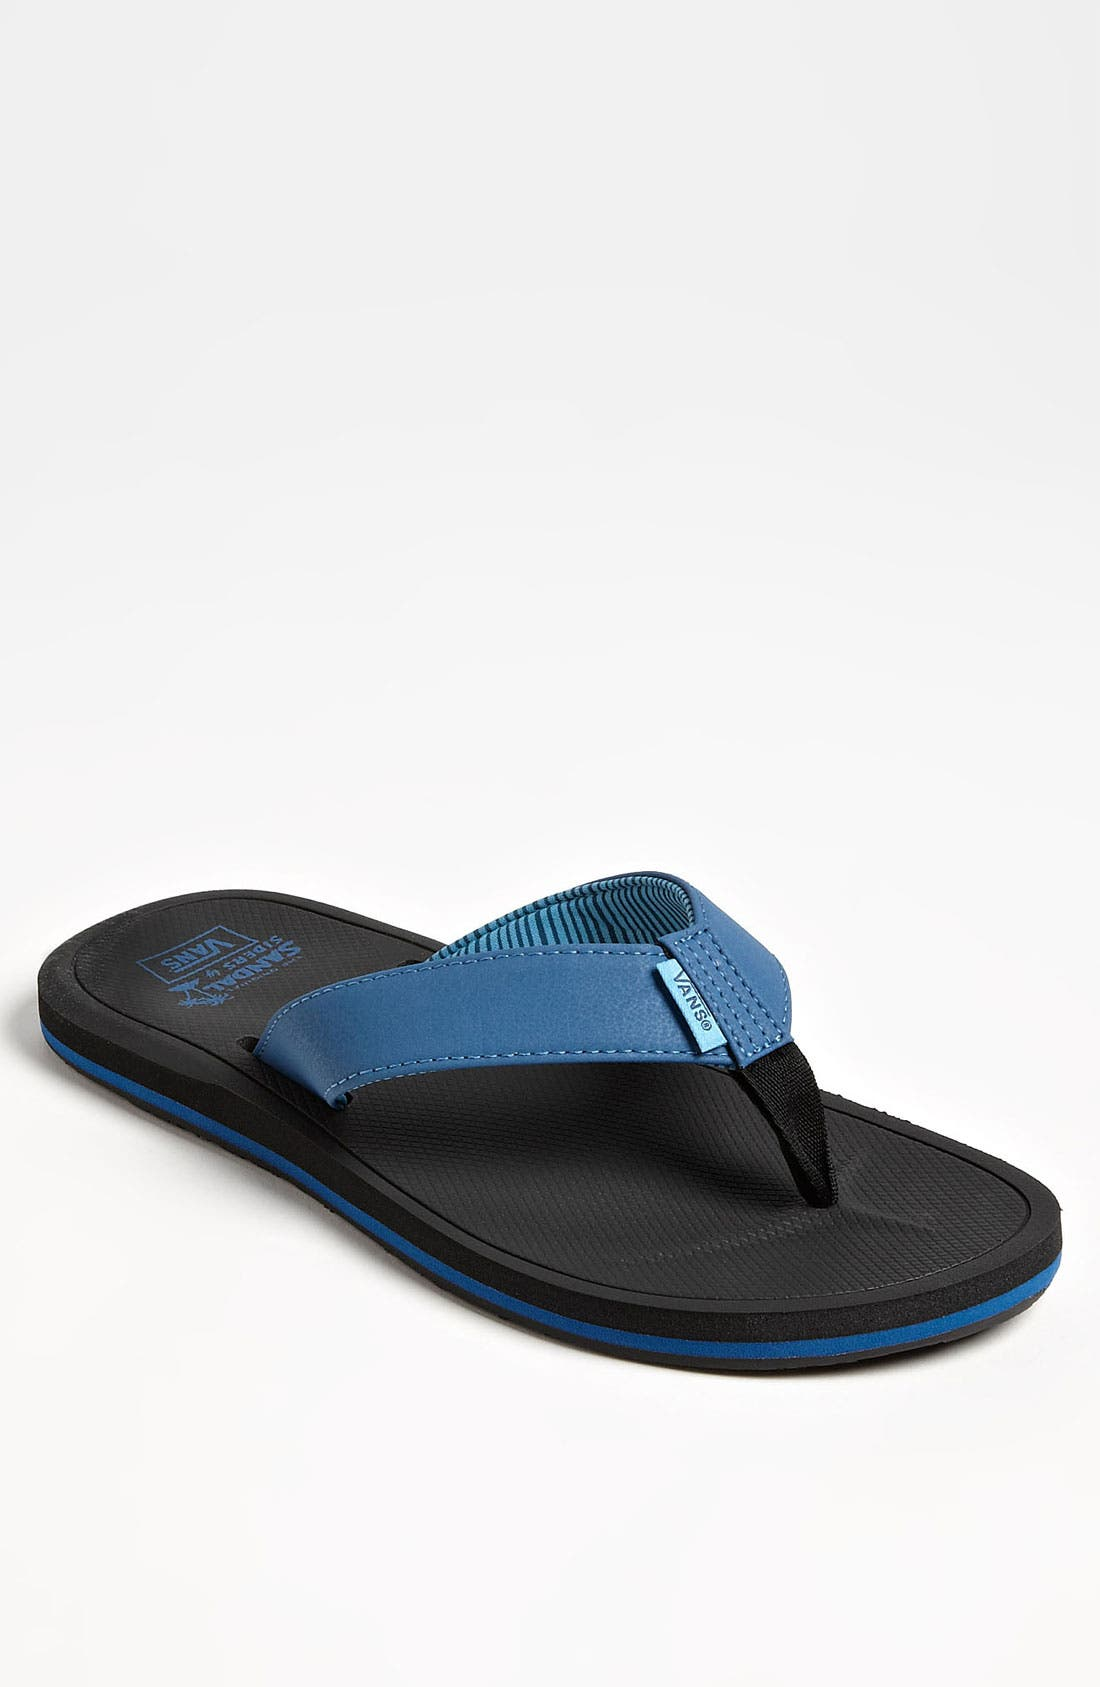 Alternate Image 1 Selected - Vans 'Nexpa Pro' Flip Flop (Men)